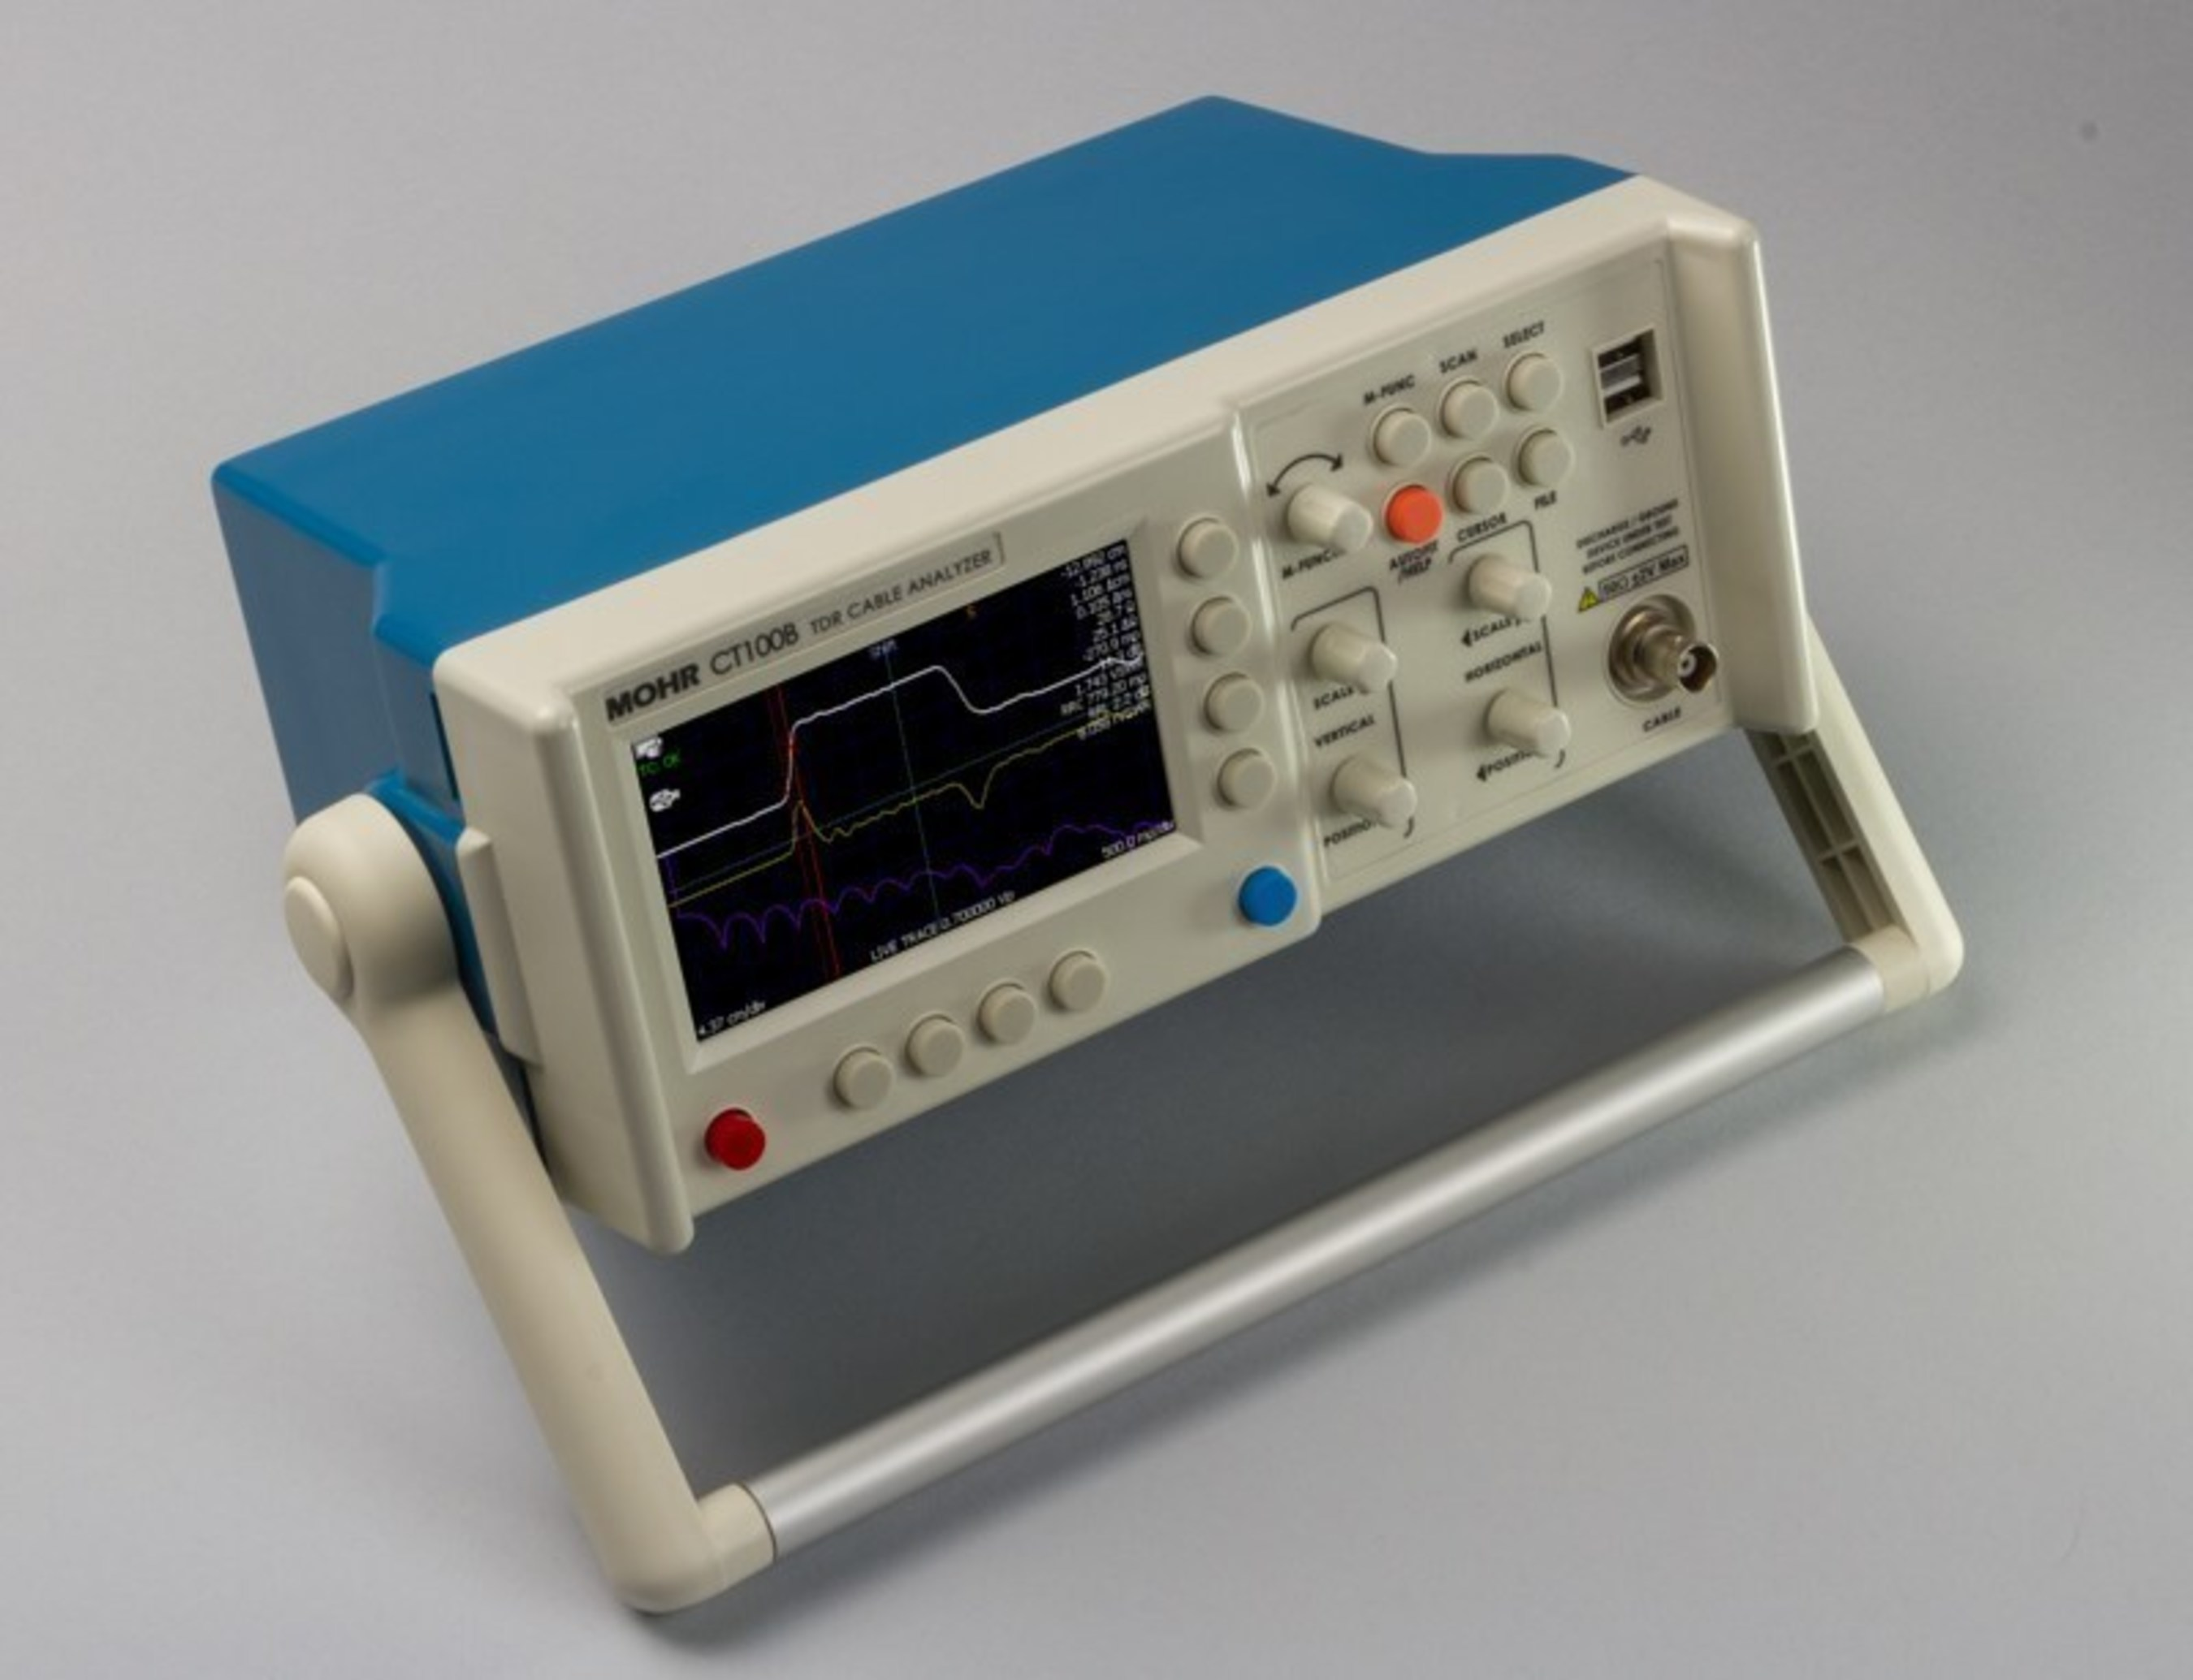 MOHR CT100B TDR Cable Analyzer